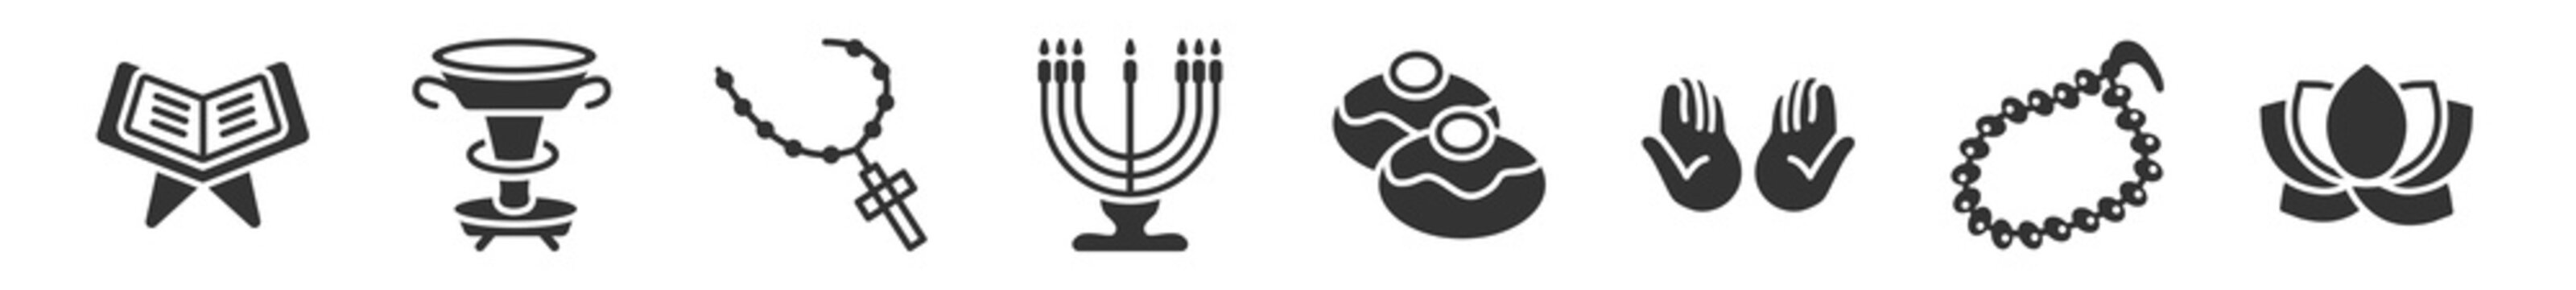 filled set of religion icons. glyph vector icons such as reading quran, laver of washing, rosary, big menorah, sufganiyah, lotus. vector illustration.